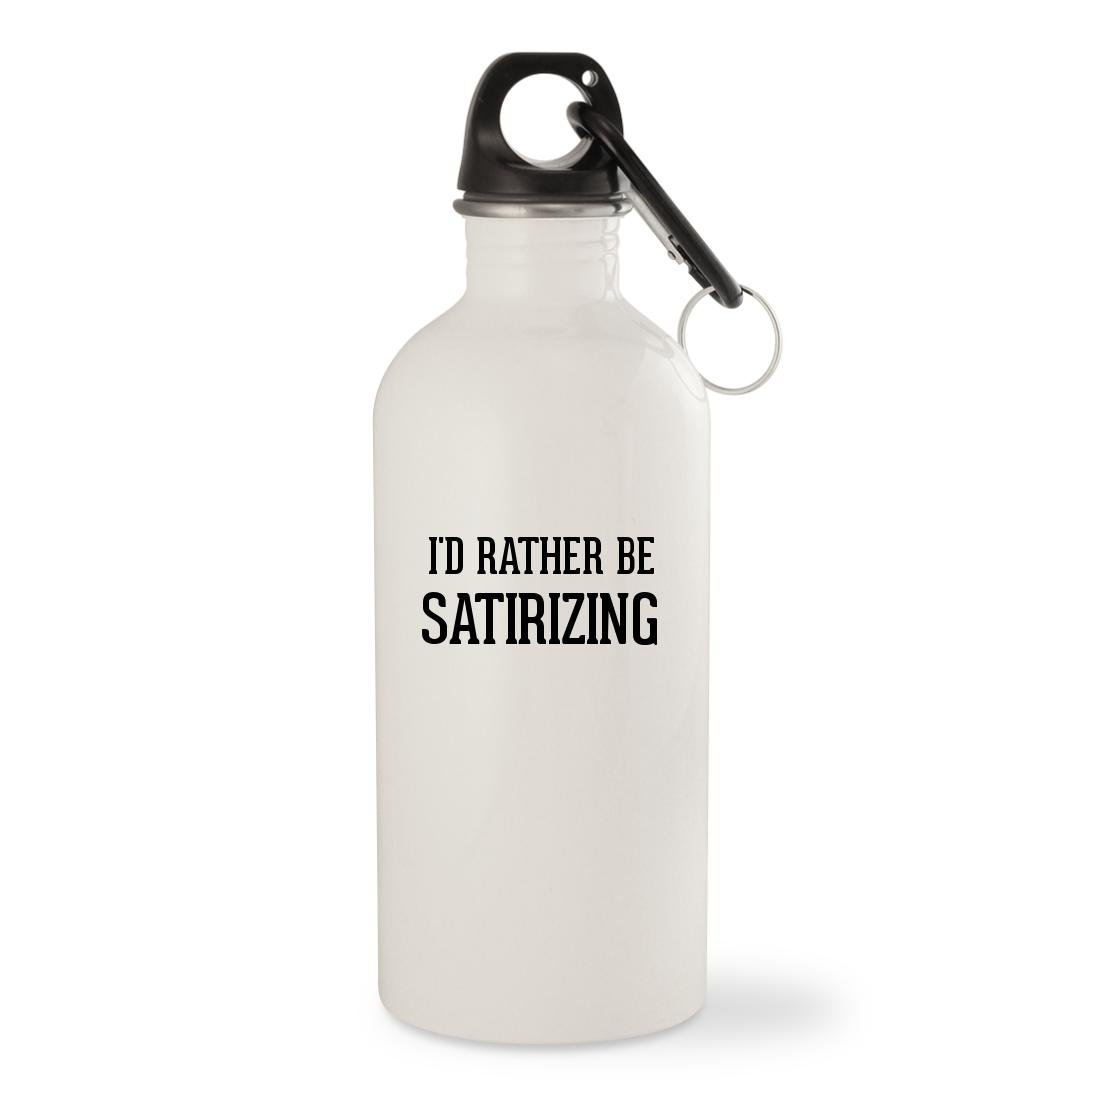 I'd Rather Be SATIRIZING - White 20oz Stainless Steel Water Bottle with Carabiner